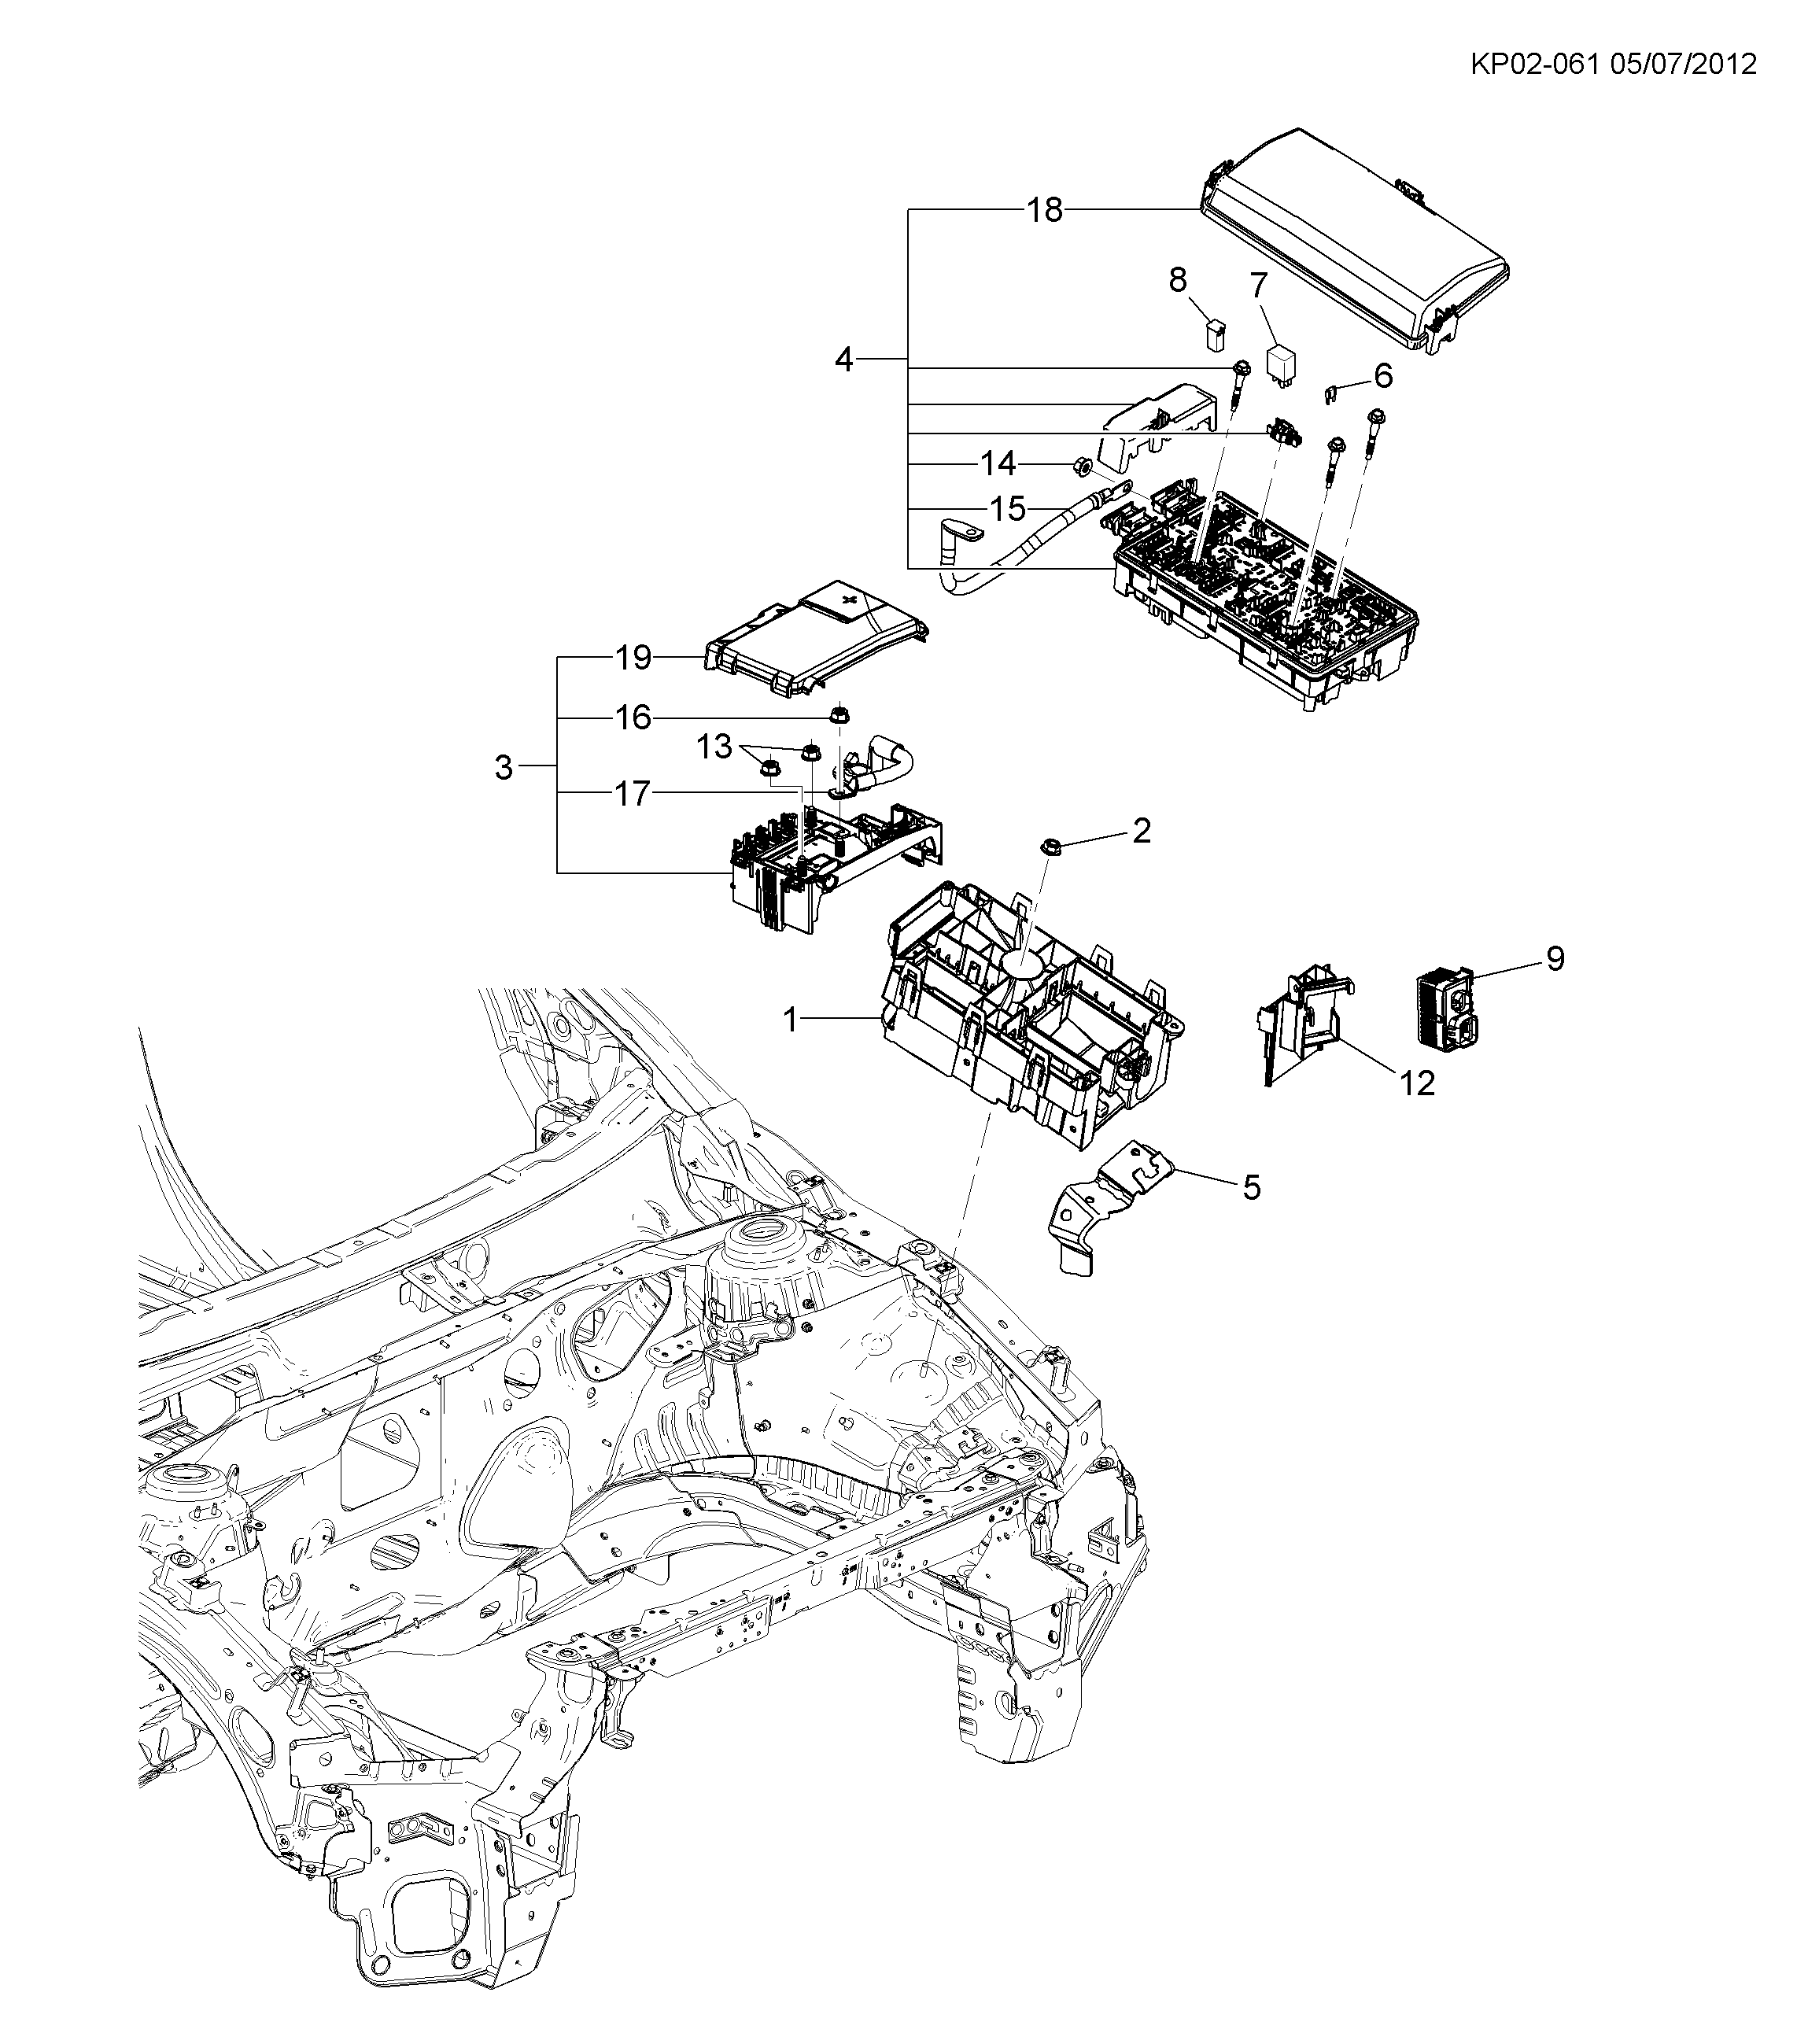 Nissan Cube Engine Diagram 2017 Chevy Cruze Content Resource Of Wiring Images Gallery